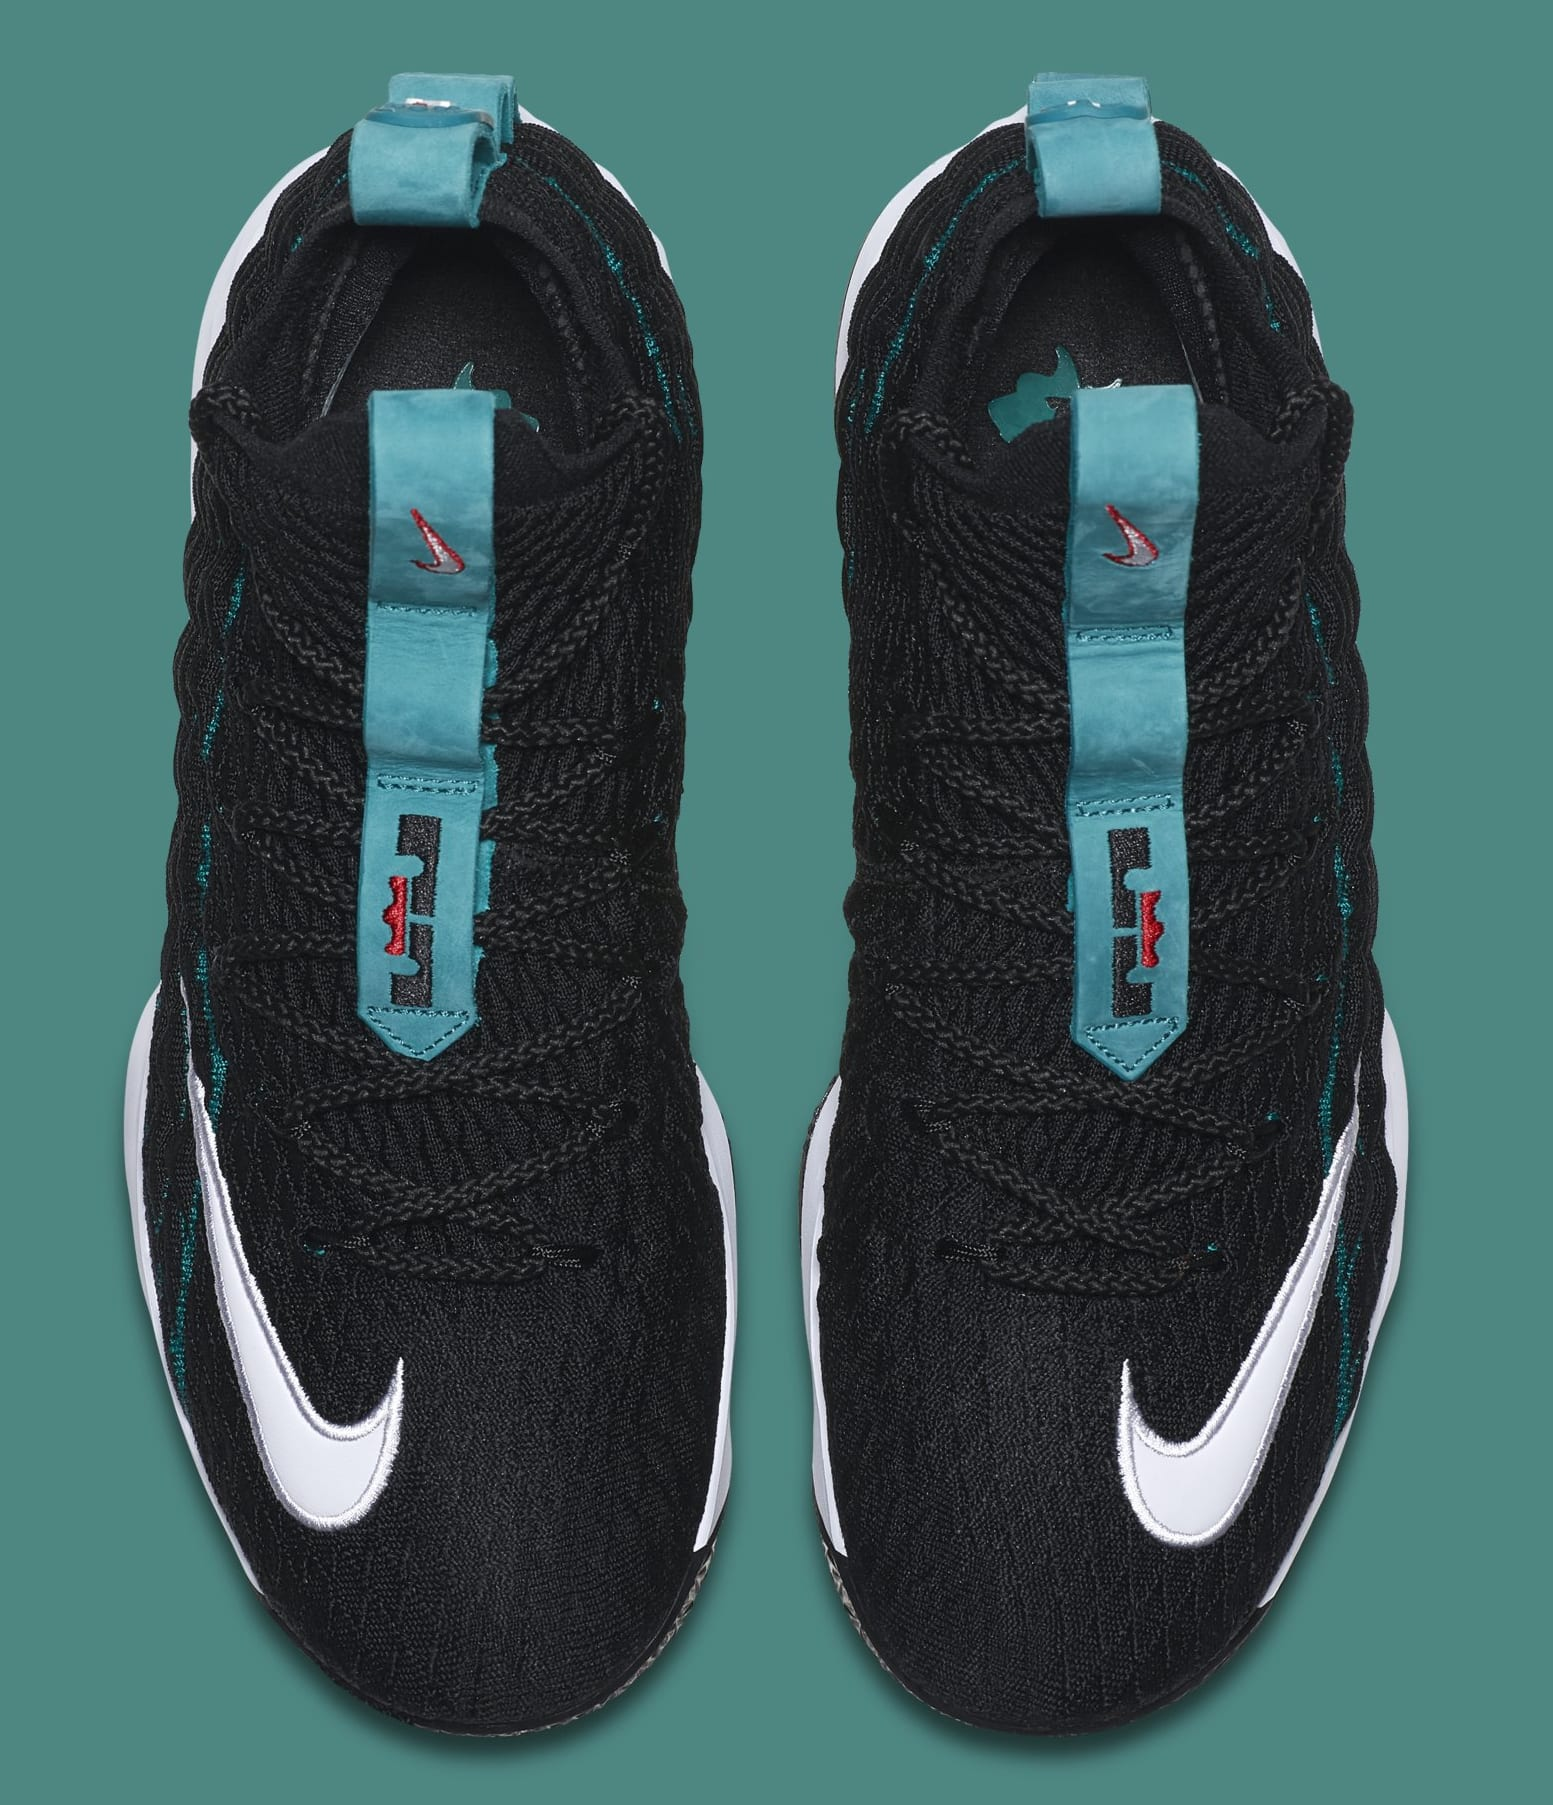 the latest 2b6c7 34572 LeBron James Honors Ken Griffey Jr. With Nike LeBron 15s ...